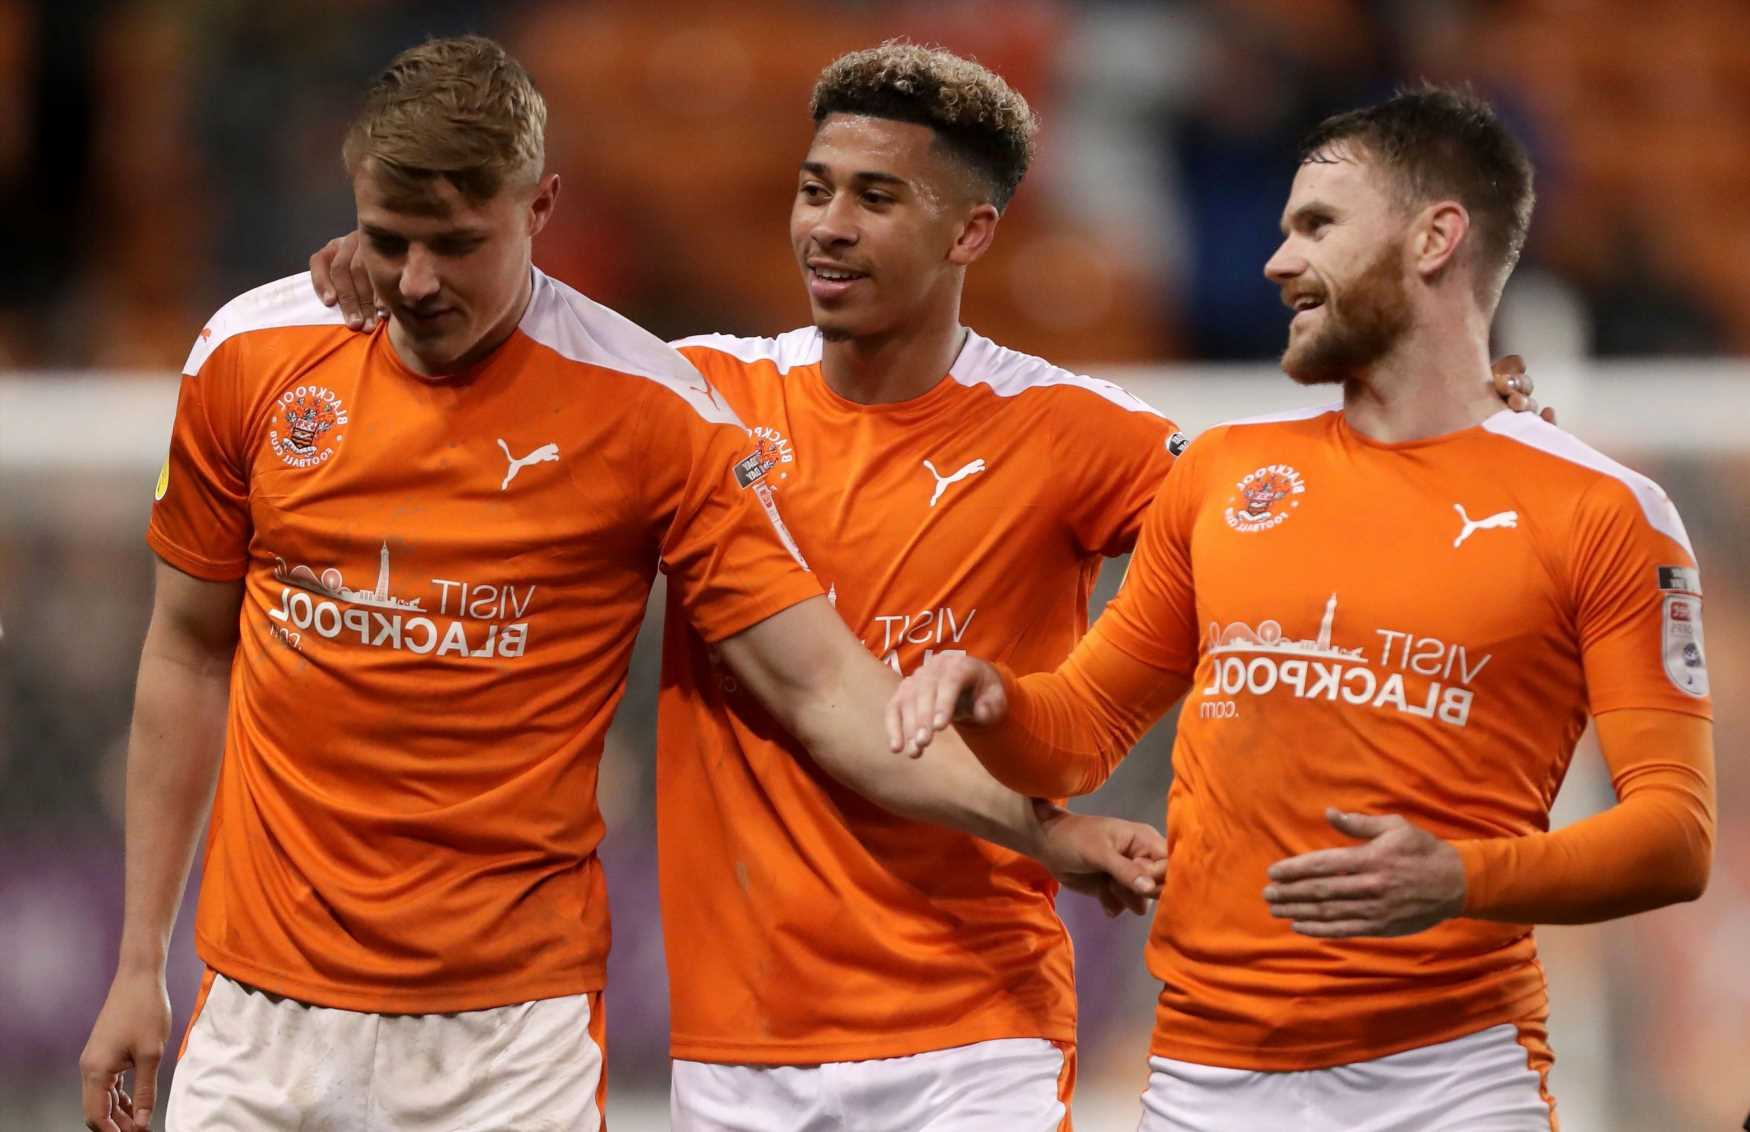 Blackpool vs Lincoln: Live stream, TV channel, kick-off time and team news for League One play-off final